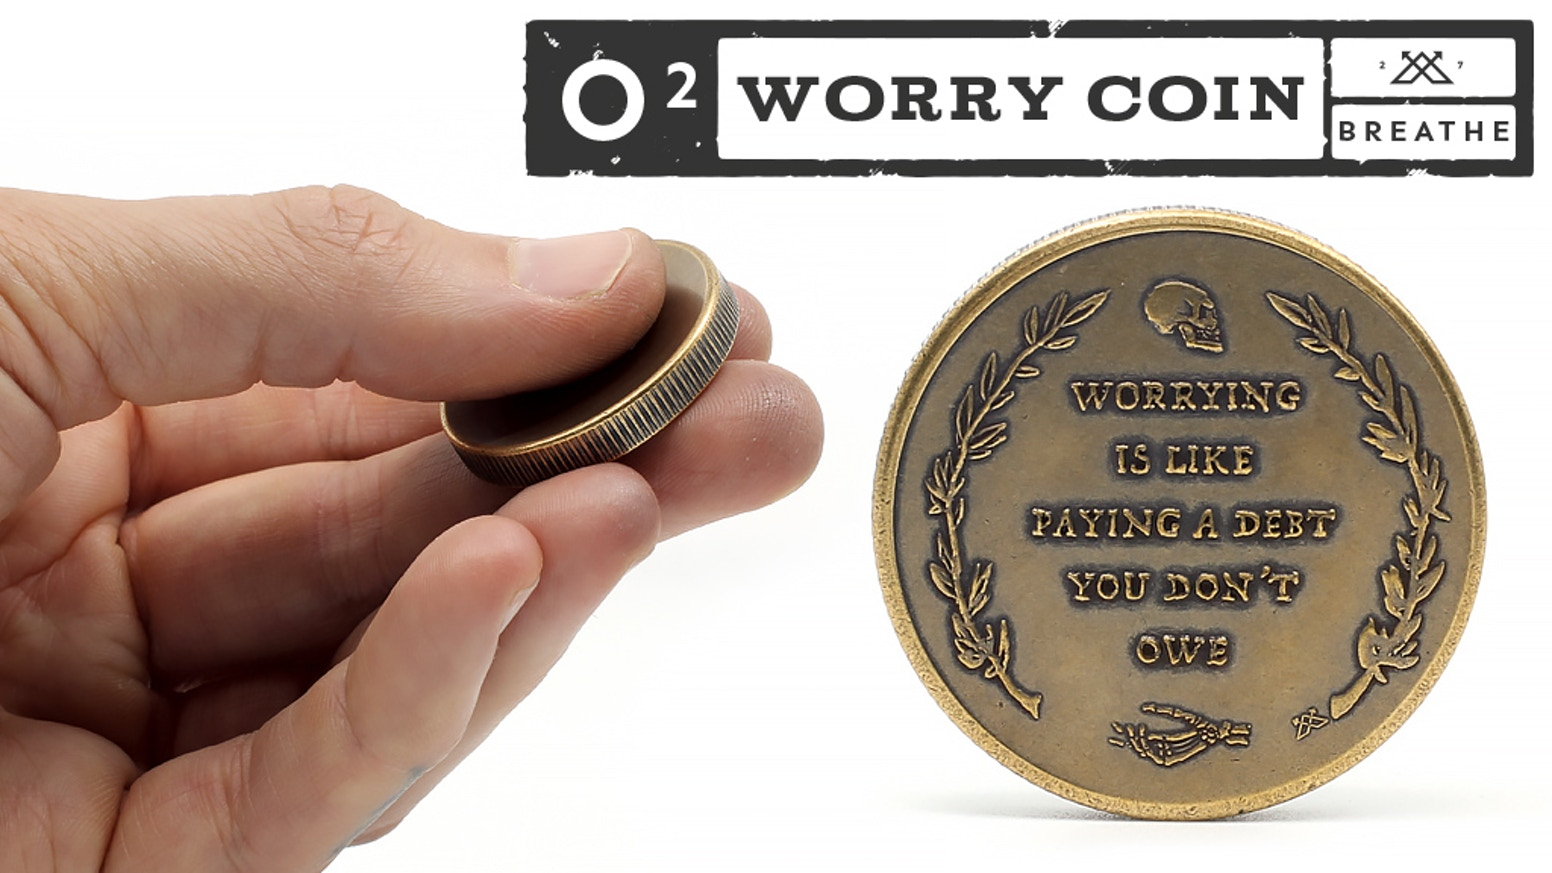 O2 Worry Coin by Anthony Lawson » Community — Kickstarter